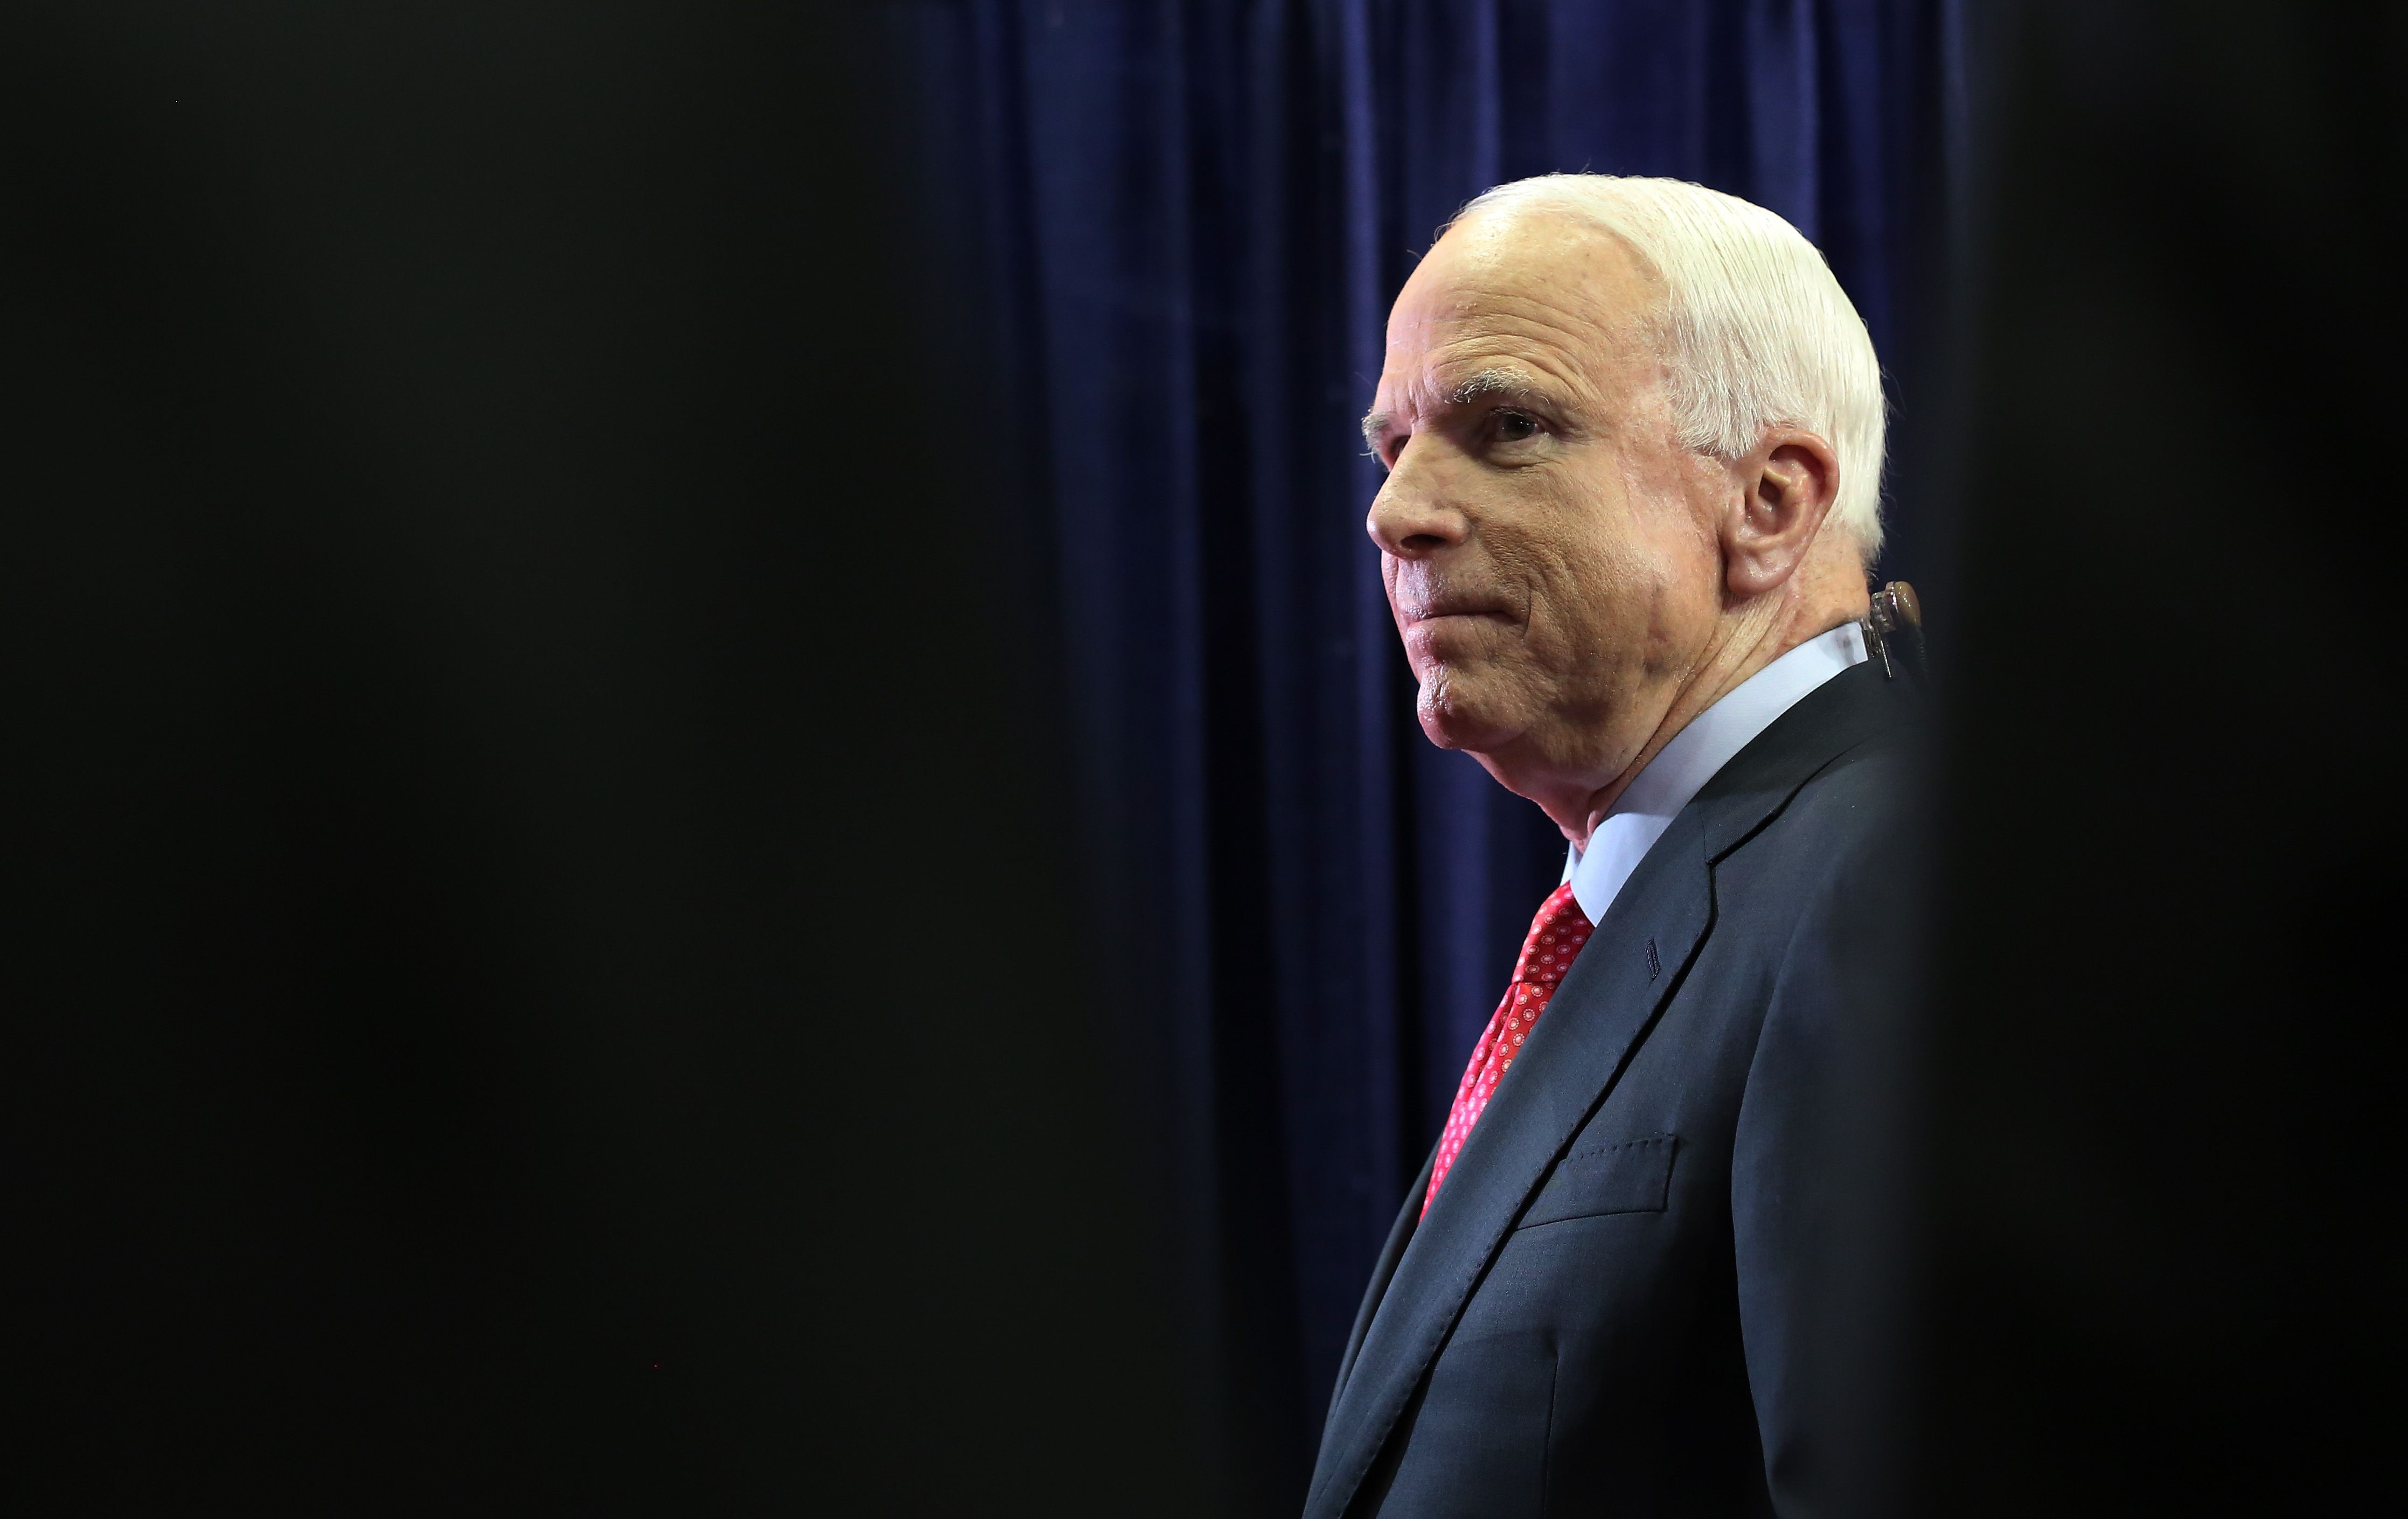 President Trump may not attend the late Senator McCains funeral